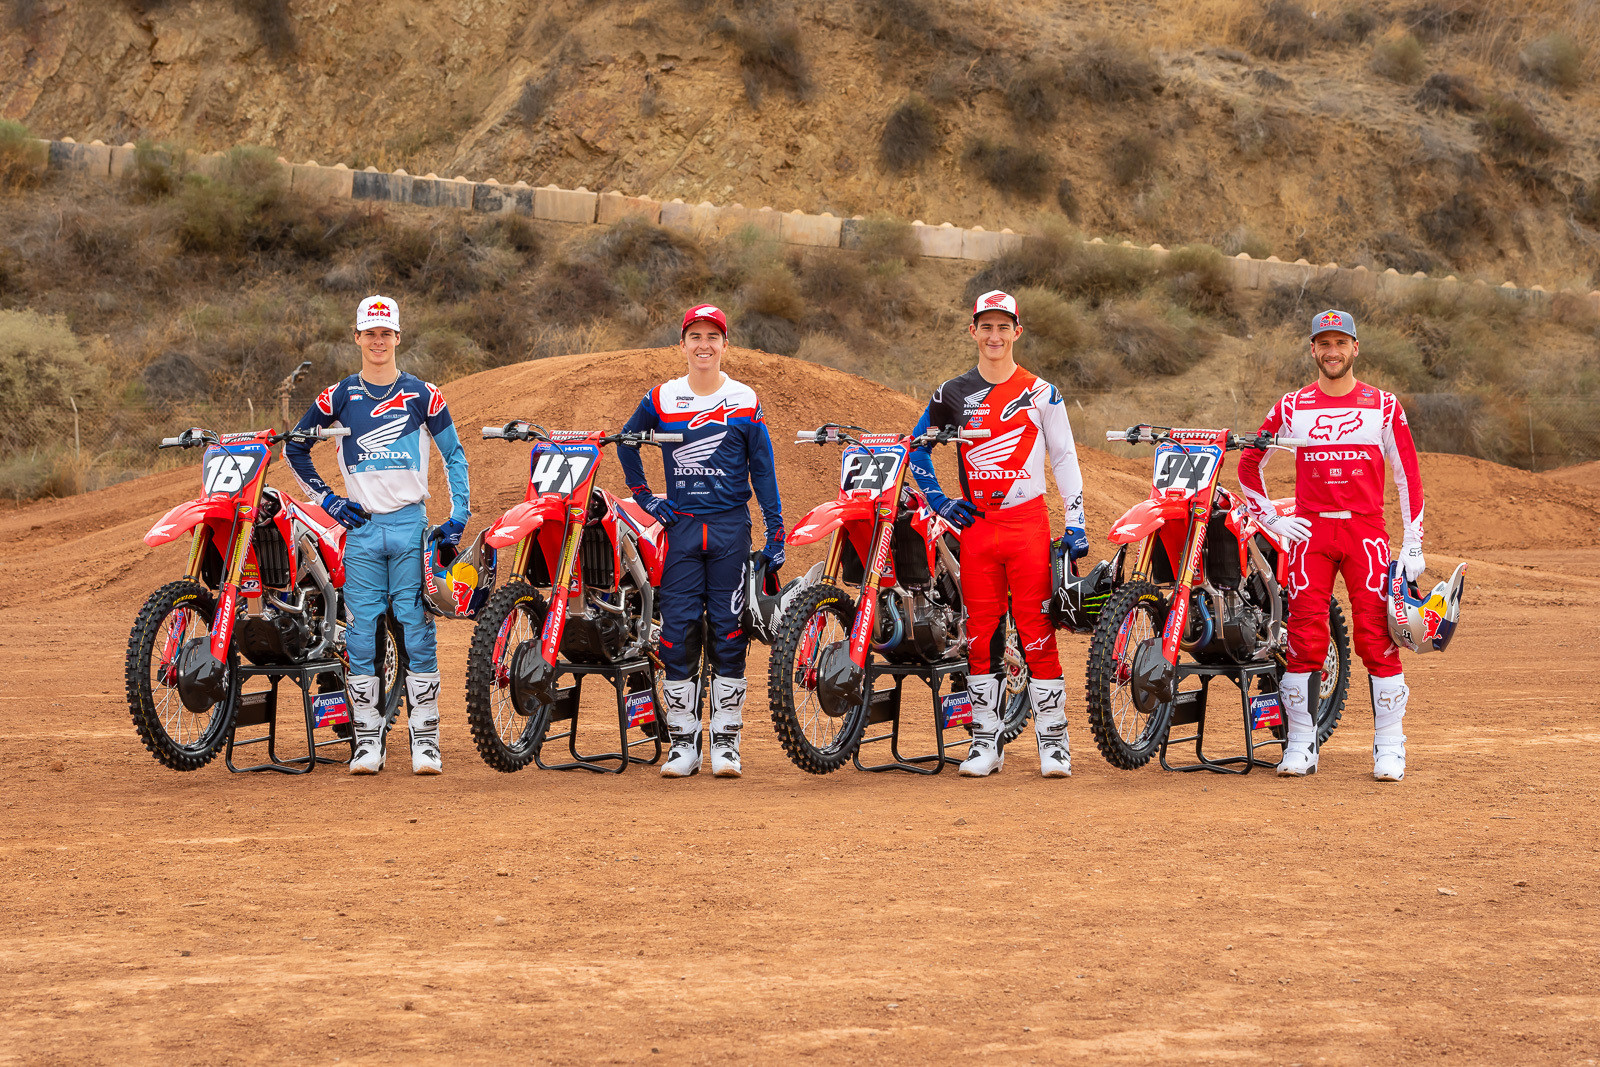 Here's the complete Team Honda HRC squad for '21. From left to right, it's the 250 squad of Jett and Hunter Lawrence; and the 450 crew of Chase Sexton and Ken Roczen.